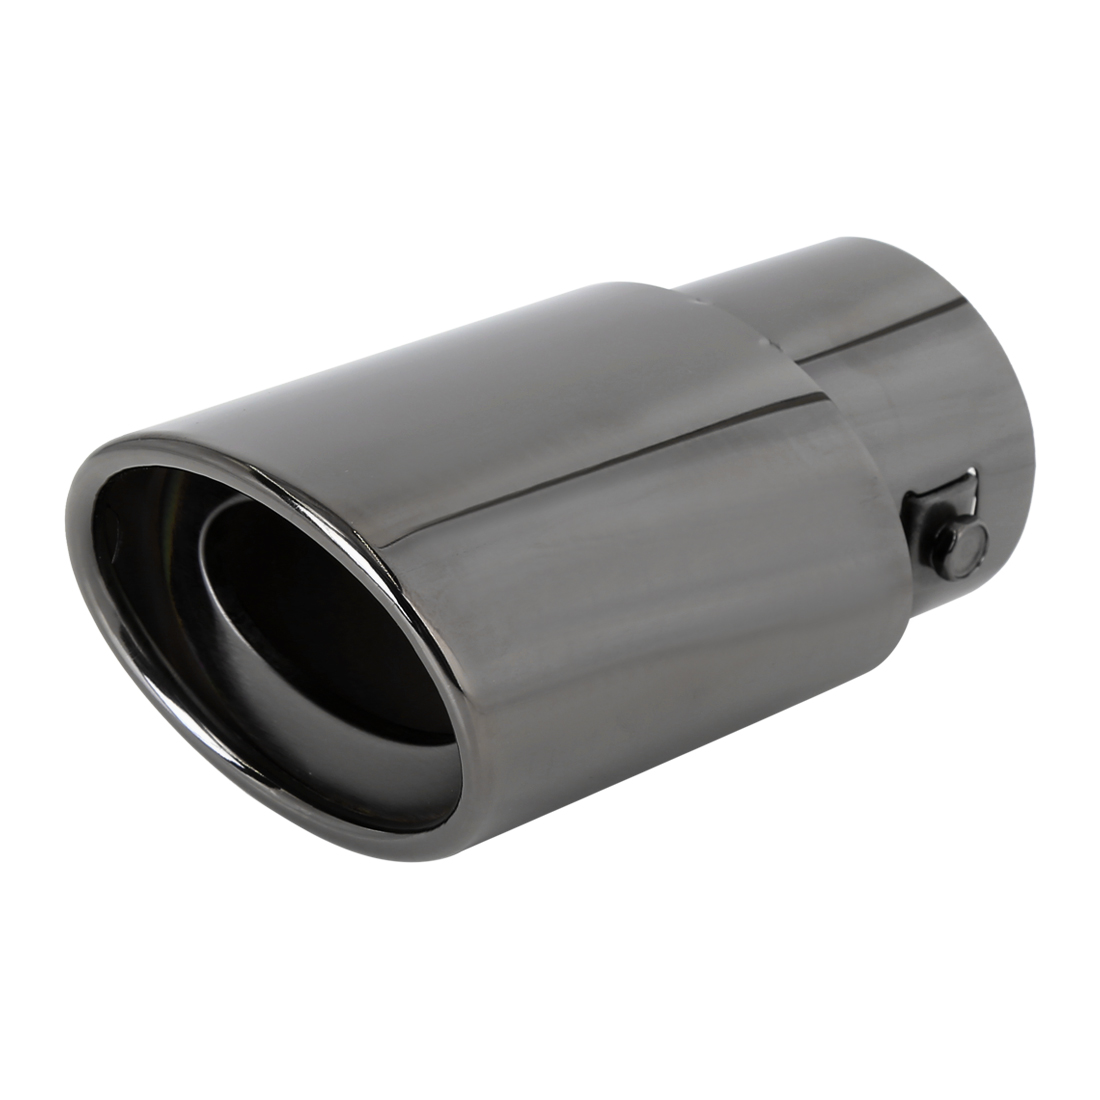 Auto Car Black Exhaust Muffler Tip Modified Silencer Pipe Tail